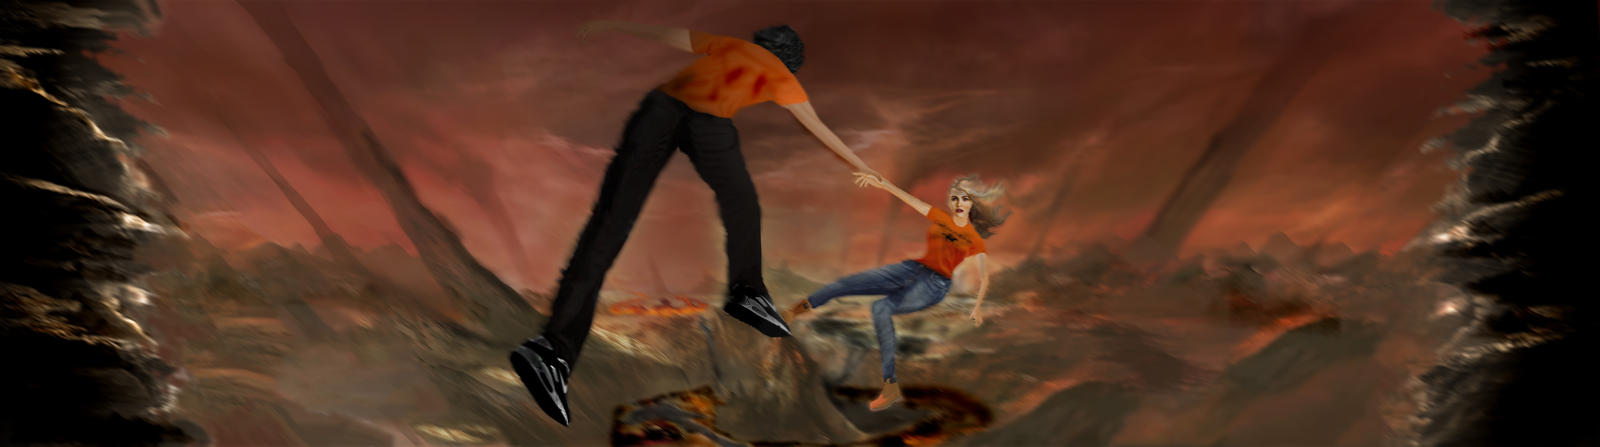 Percabeth In Tartarus for Pinterest Percy And Annabeth Fall Into Tartarus